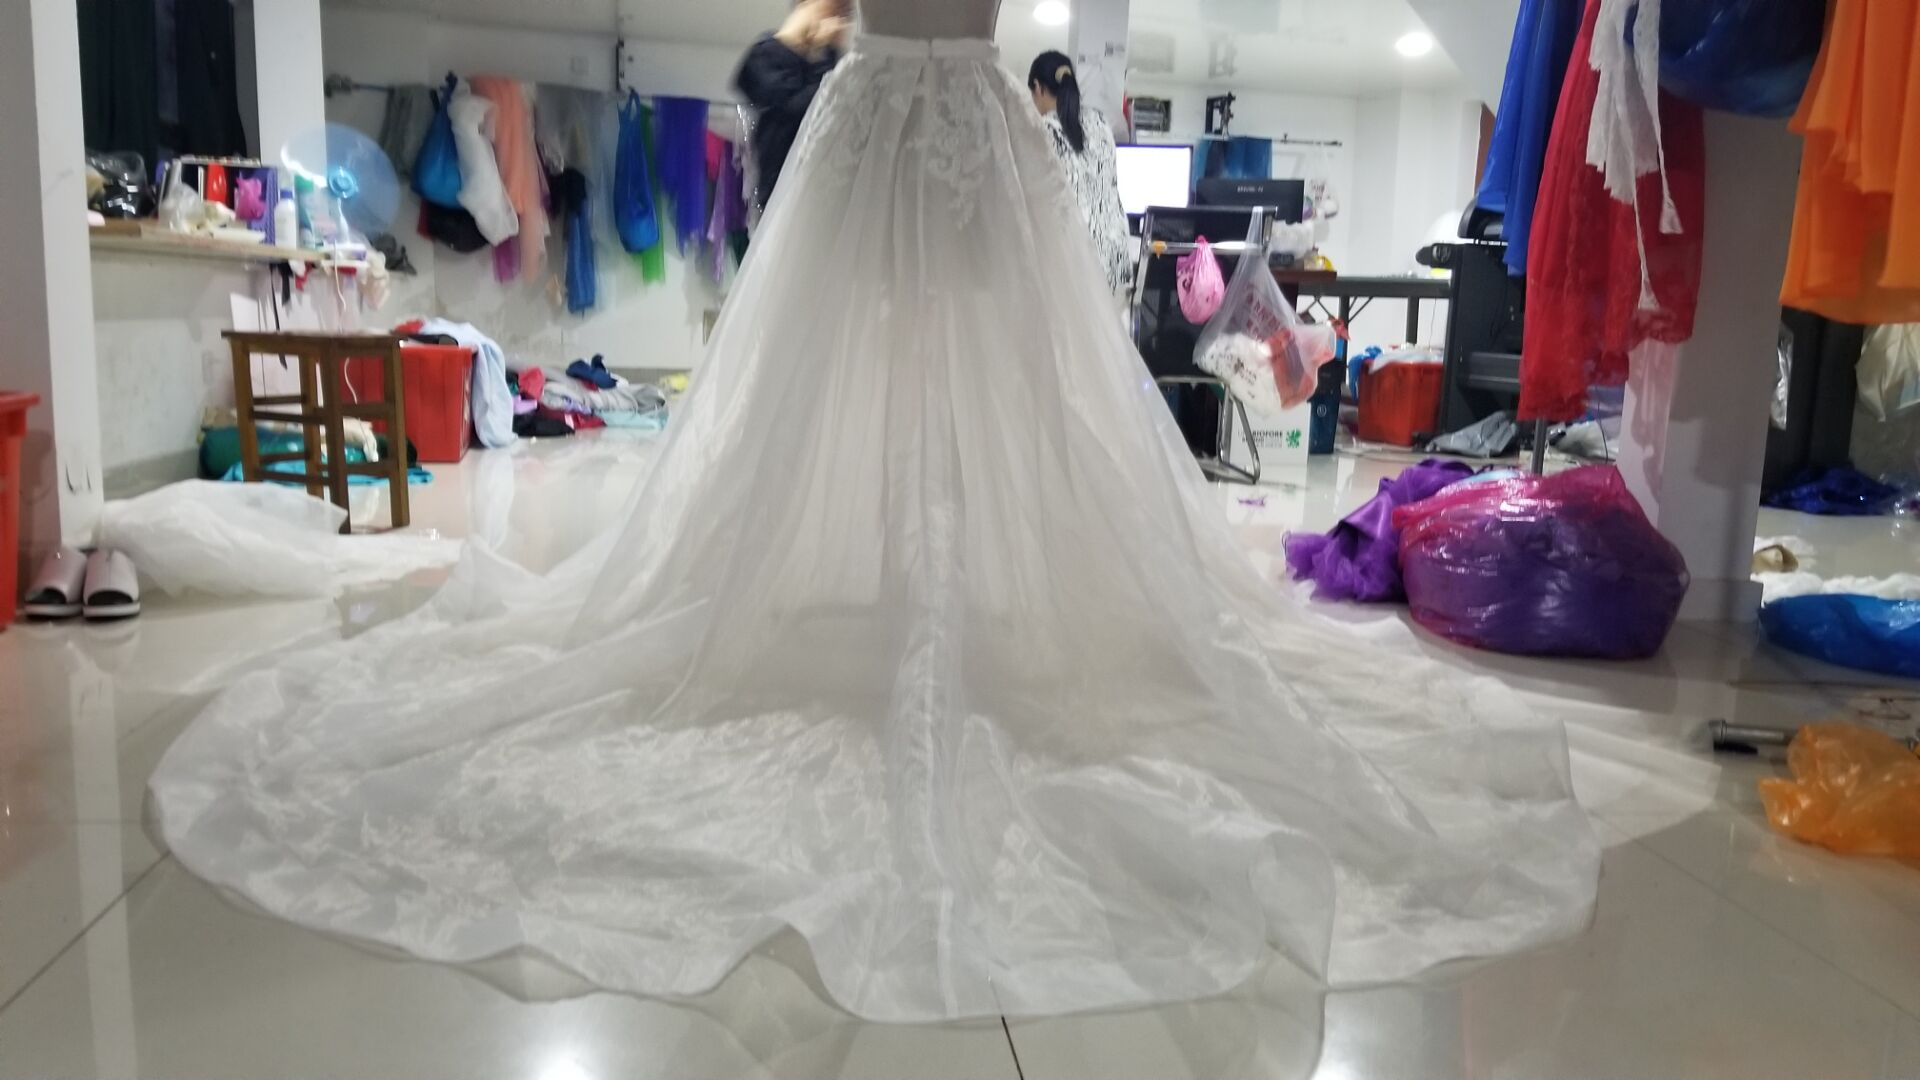 Organza Removable Skirt Detachable Train Wedding Train Appliqued Train Detachable Tulle Dress